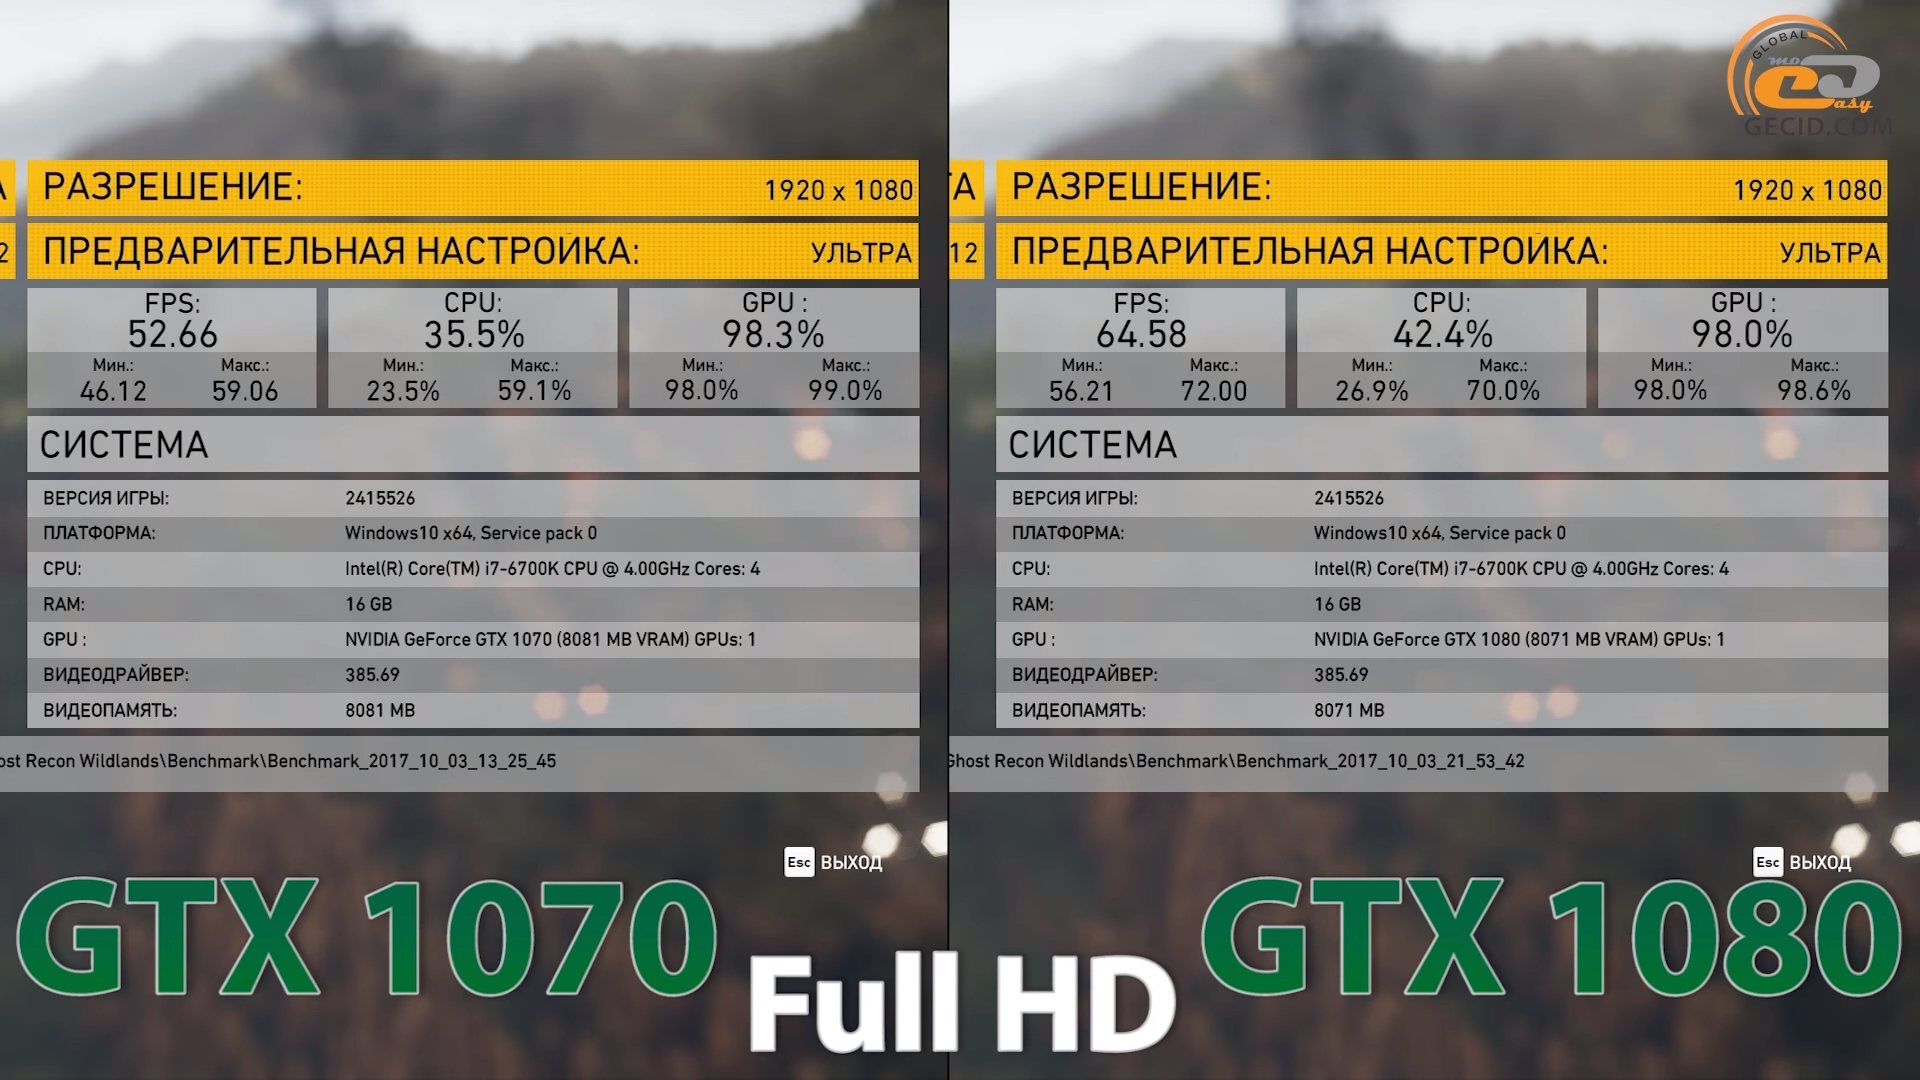 Сравнение GeForce GTX 1070 vs GeForce GTX 1080 11Gbps для игр в Full